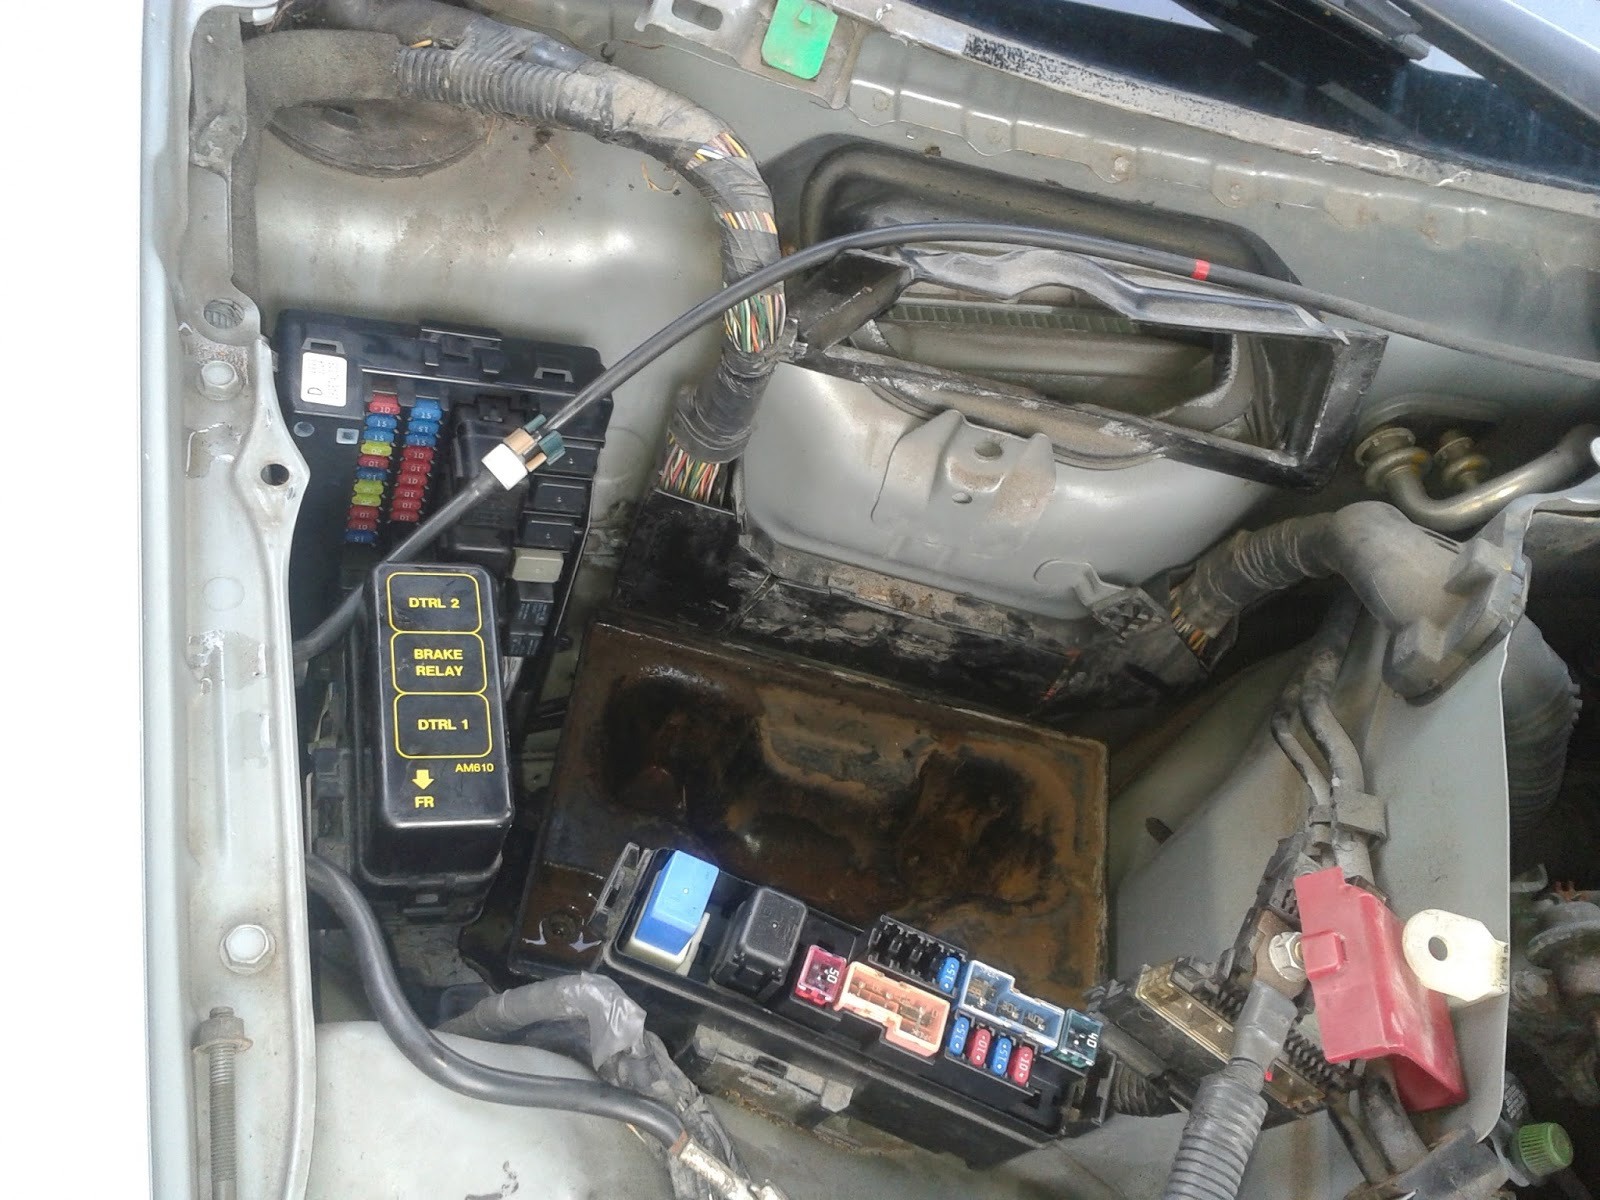 2015 05 27%2B18.55.50 zf inifiniti g35 2003 wet ipdm issue, how to fix it g35 fuse box behind battery at edmiracle.co